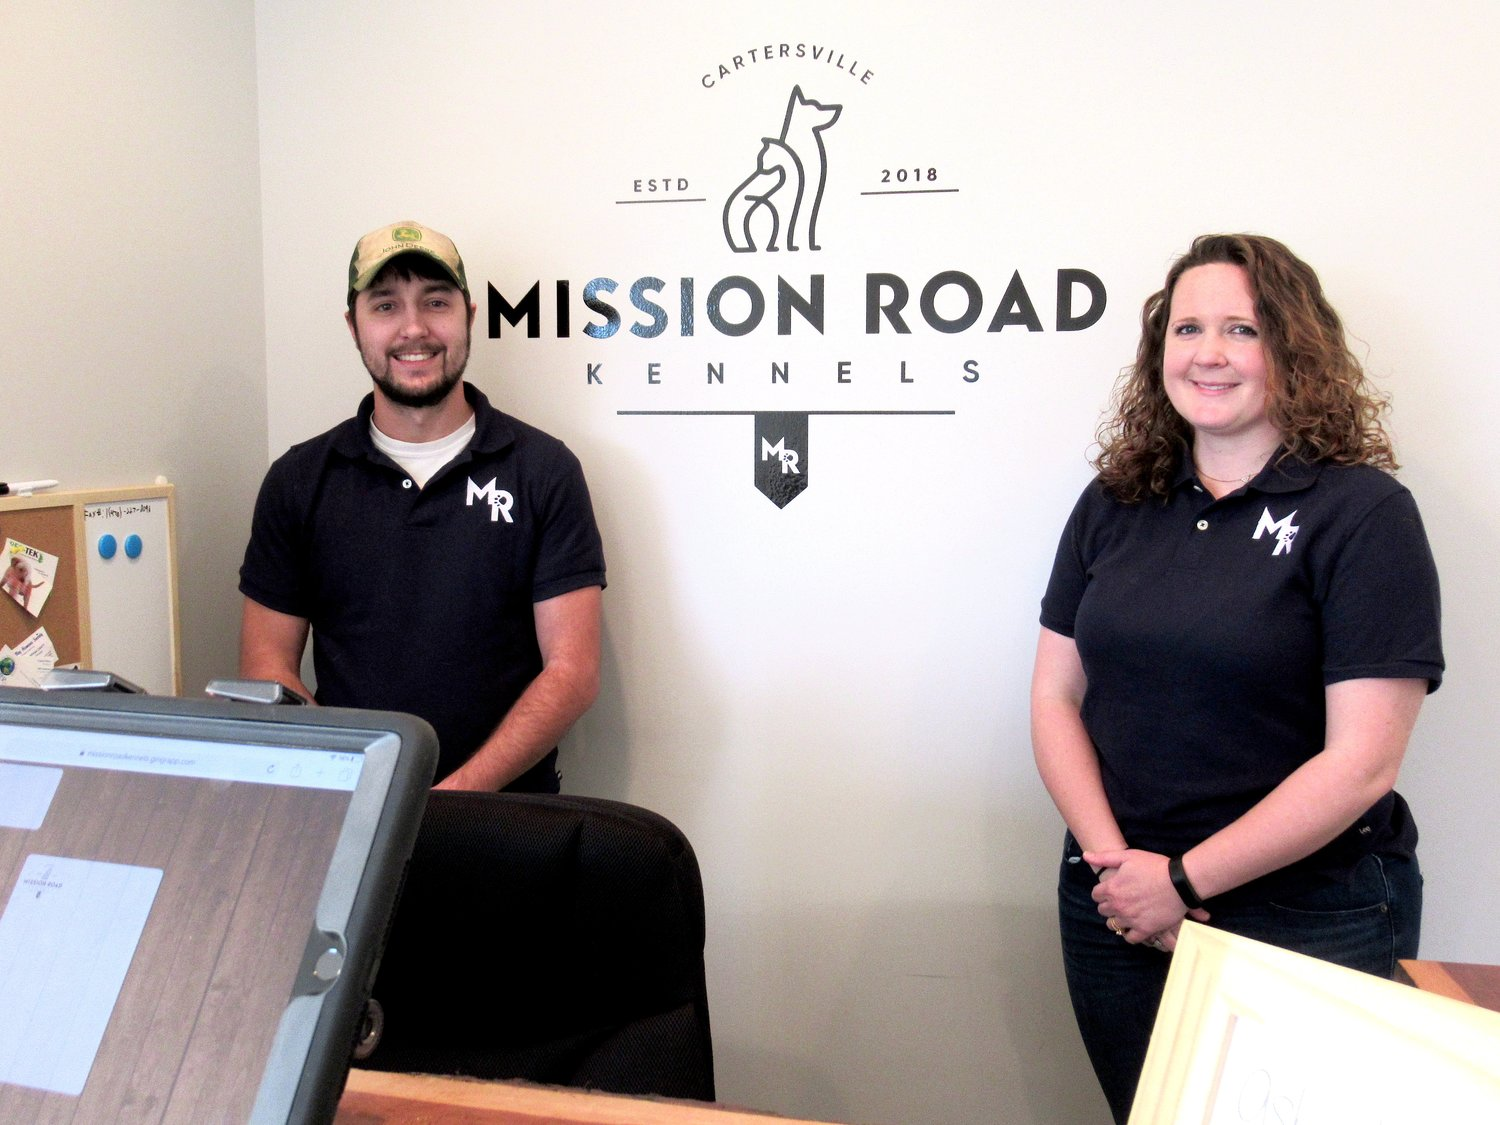 For Cartersville residents Rebecca and Jon Tyler Ylvisaker, opening a pet care facility has been a dream more than half a decade in the making.